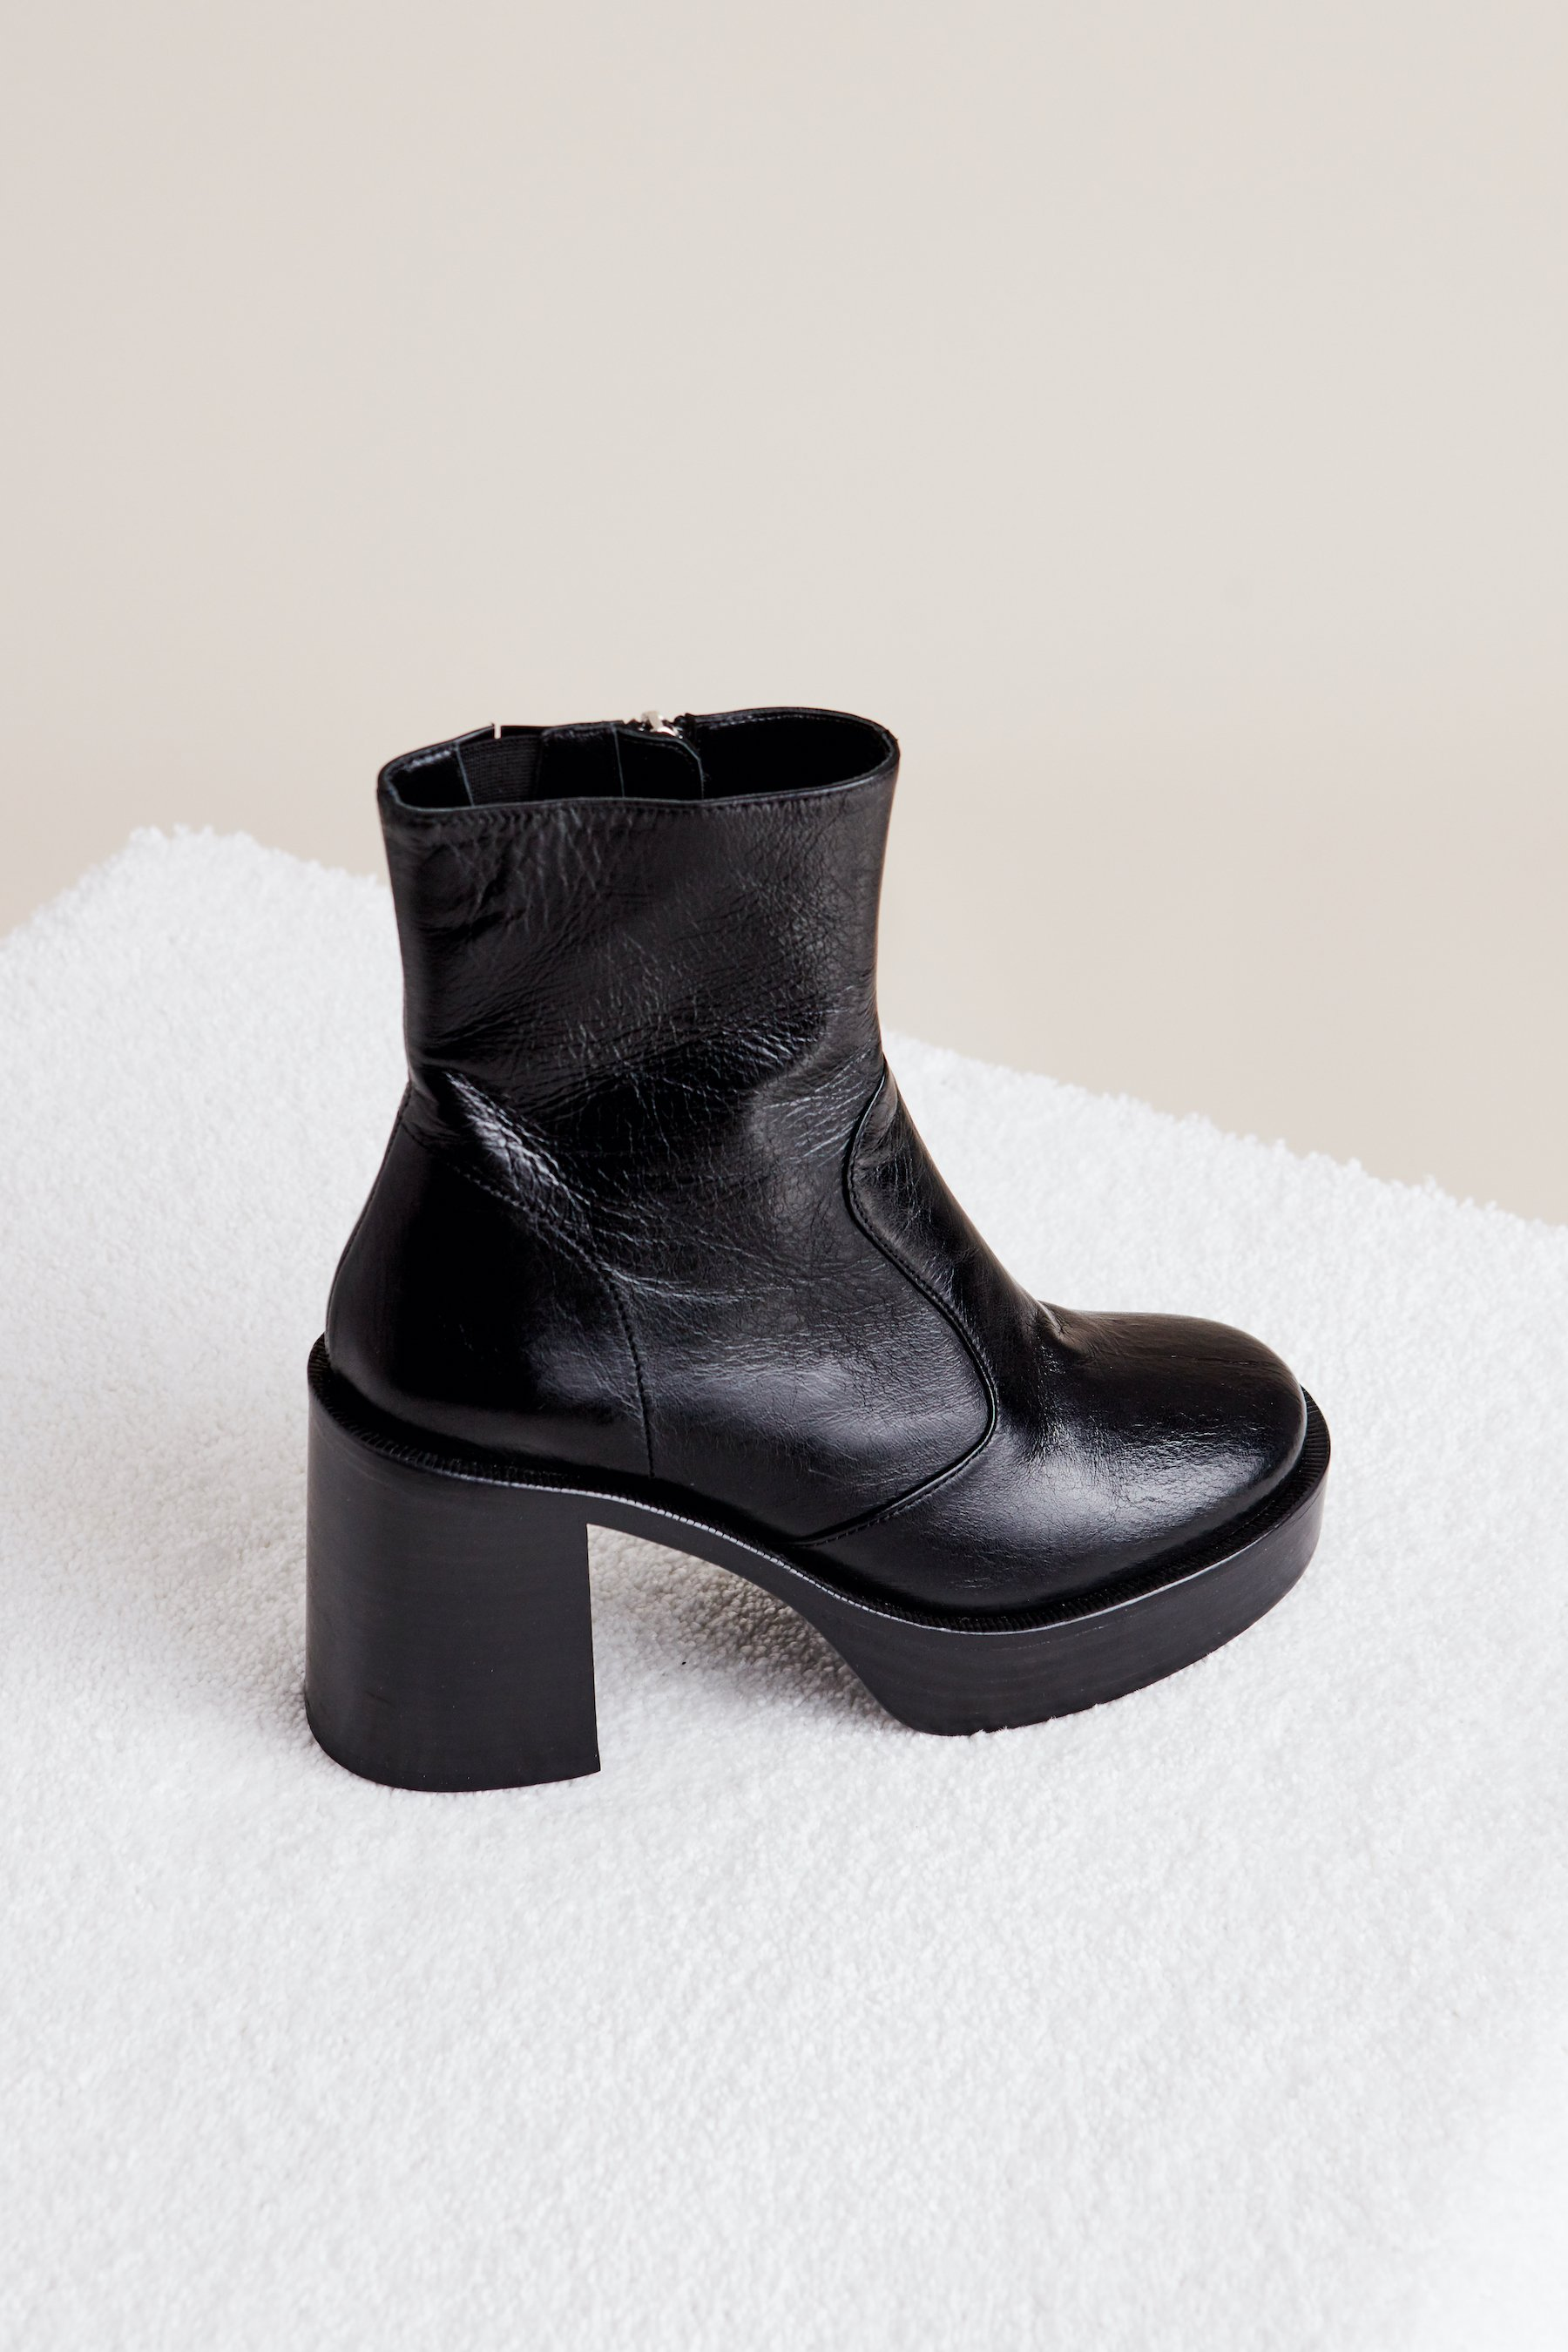 Low Raid Boot in Black by Simon Miller - 2